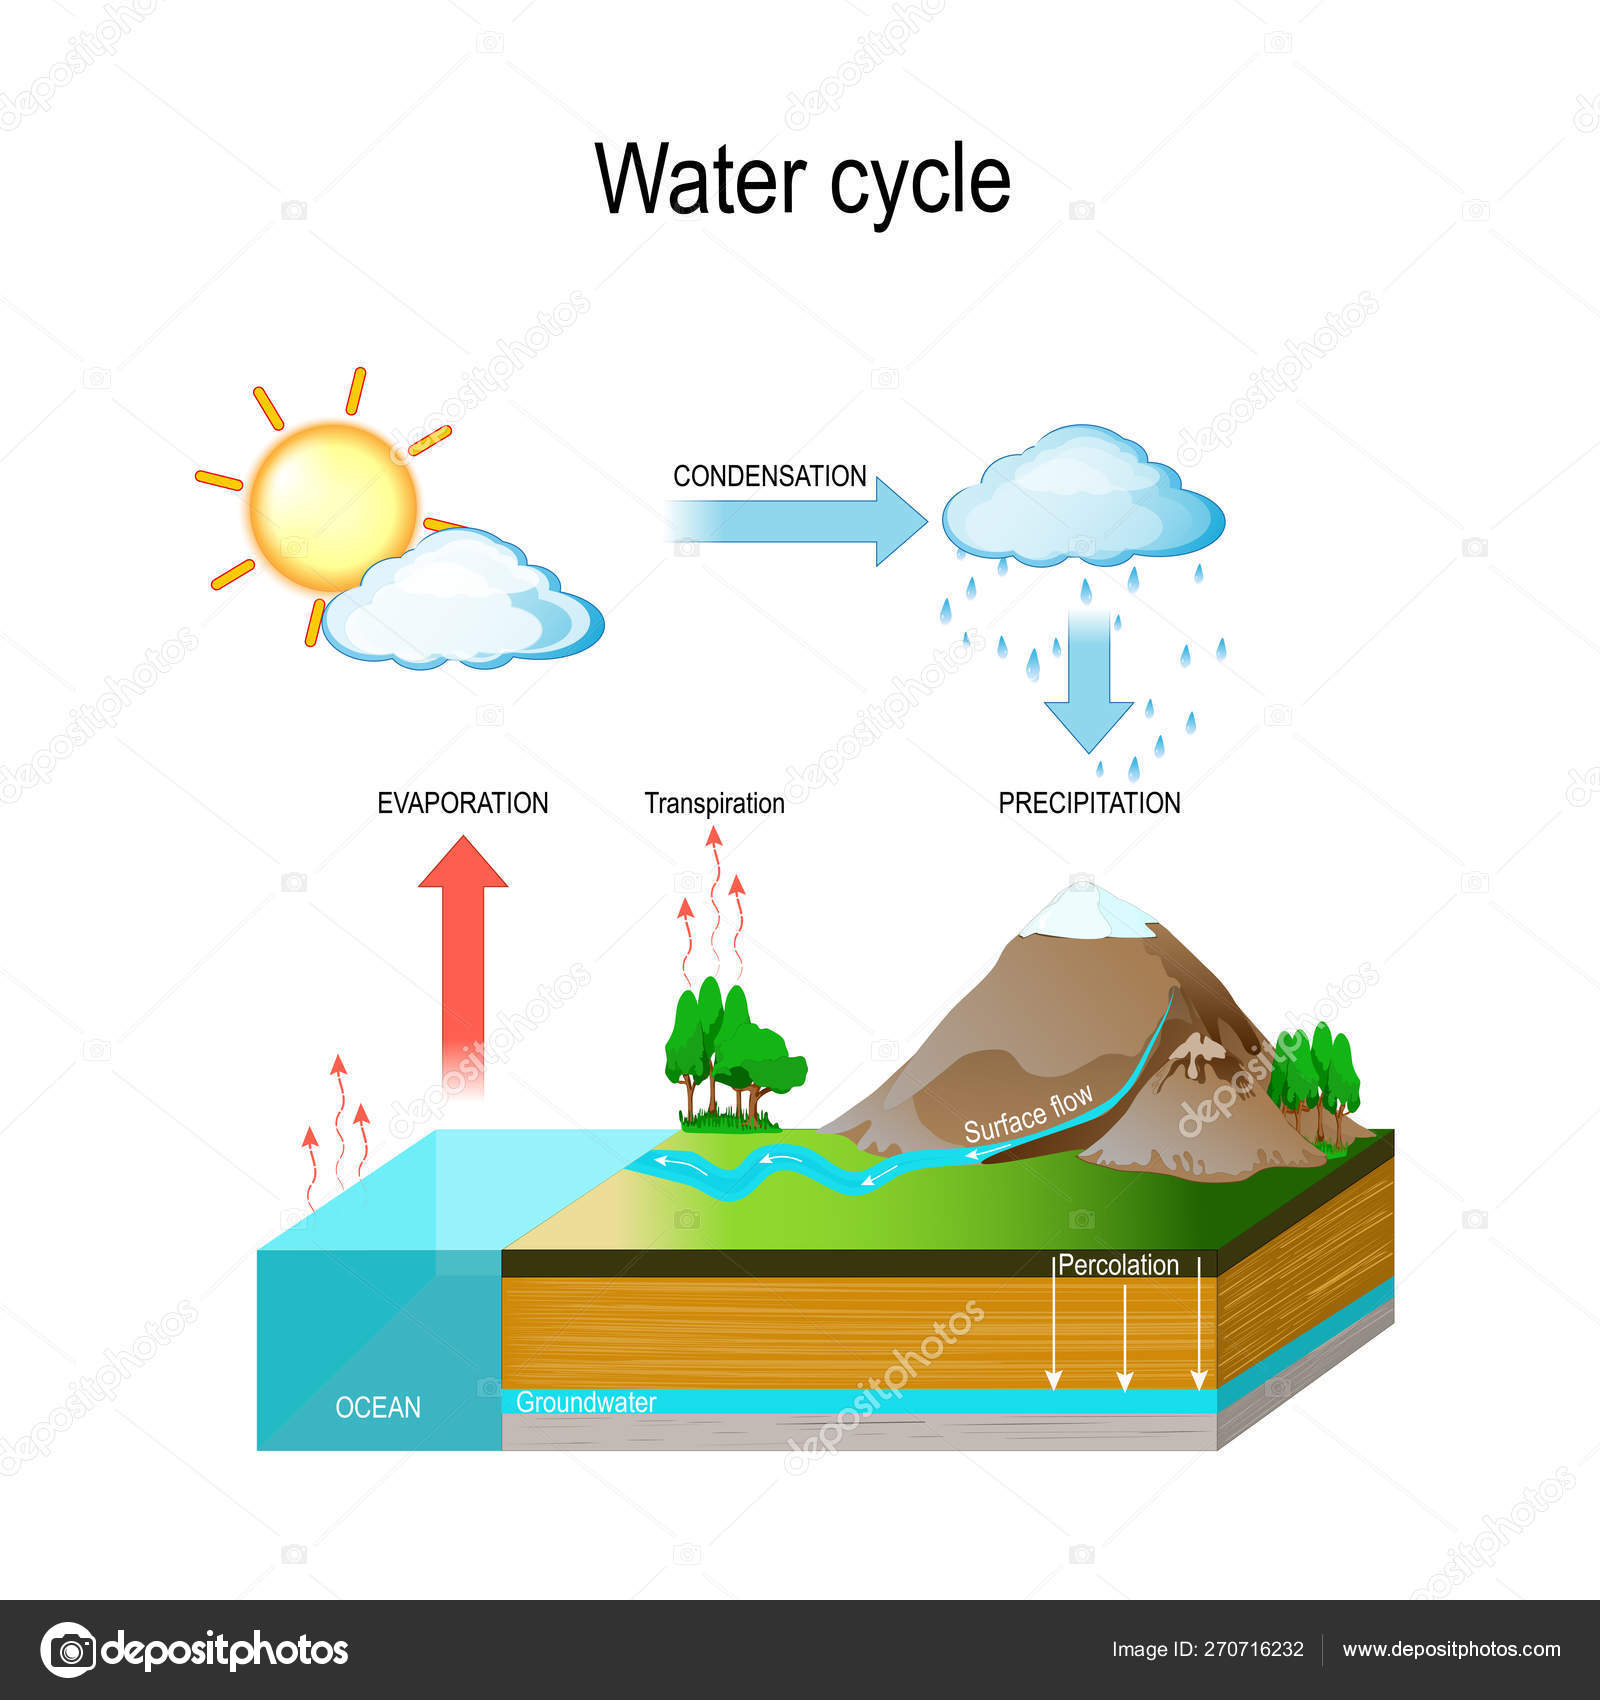 hight resolution of the sun which drives the water cycle heats water in oceans and seas water evaporates as water vapor into the air isometric diagram vector illustration